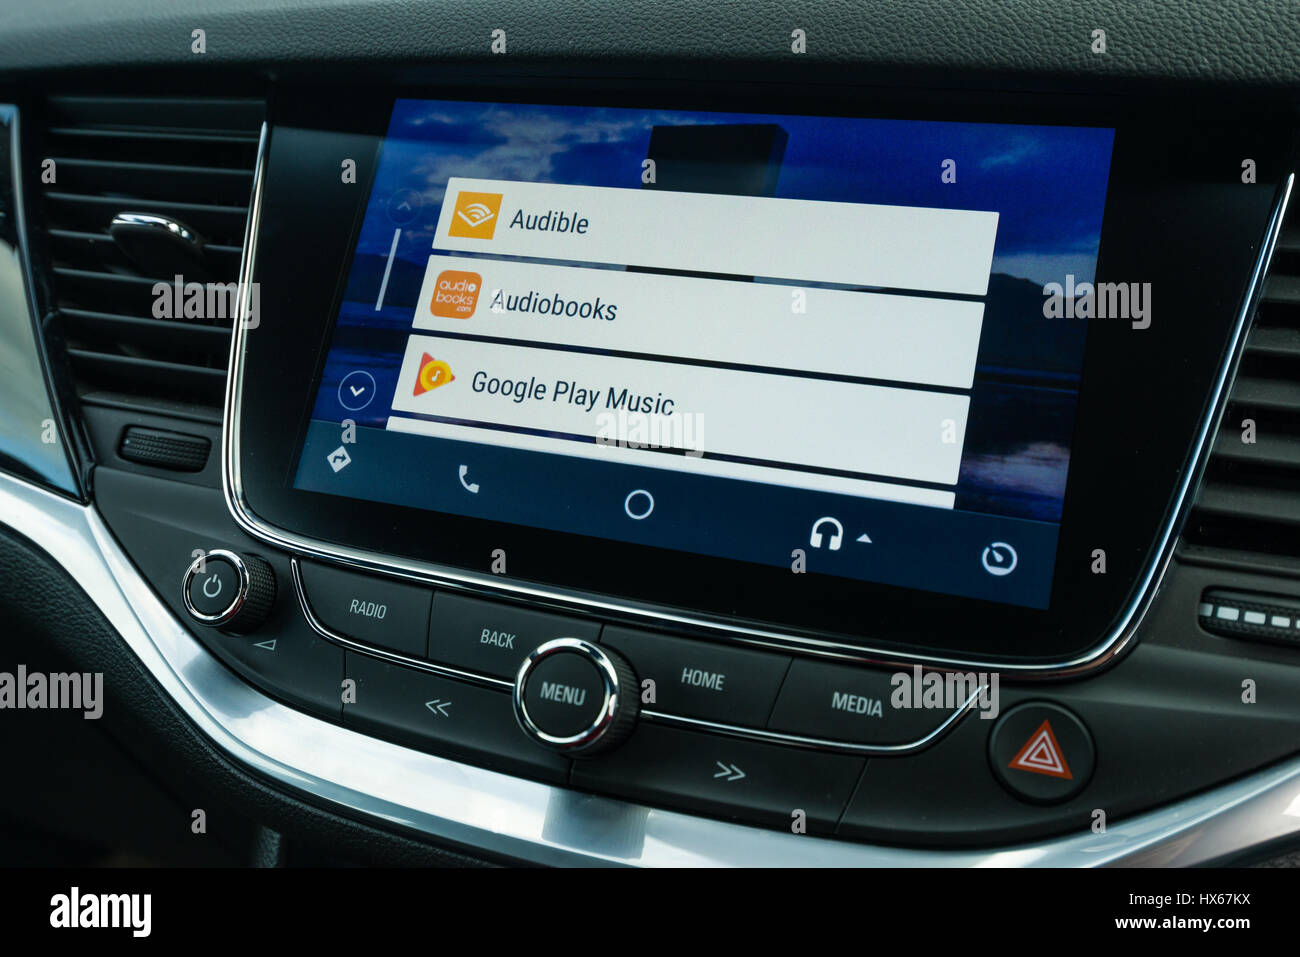 Android Auto Car Vehicle Navigation Interface Music App Selection Screen - Stock Image